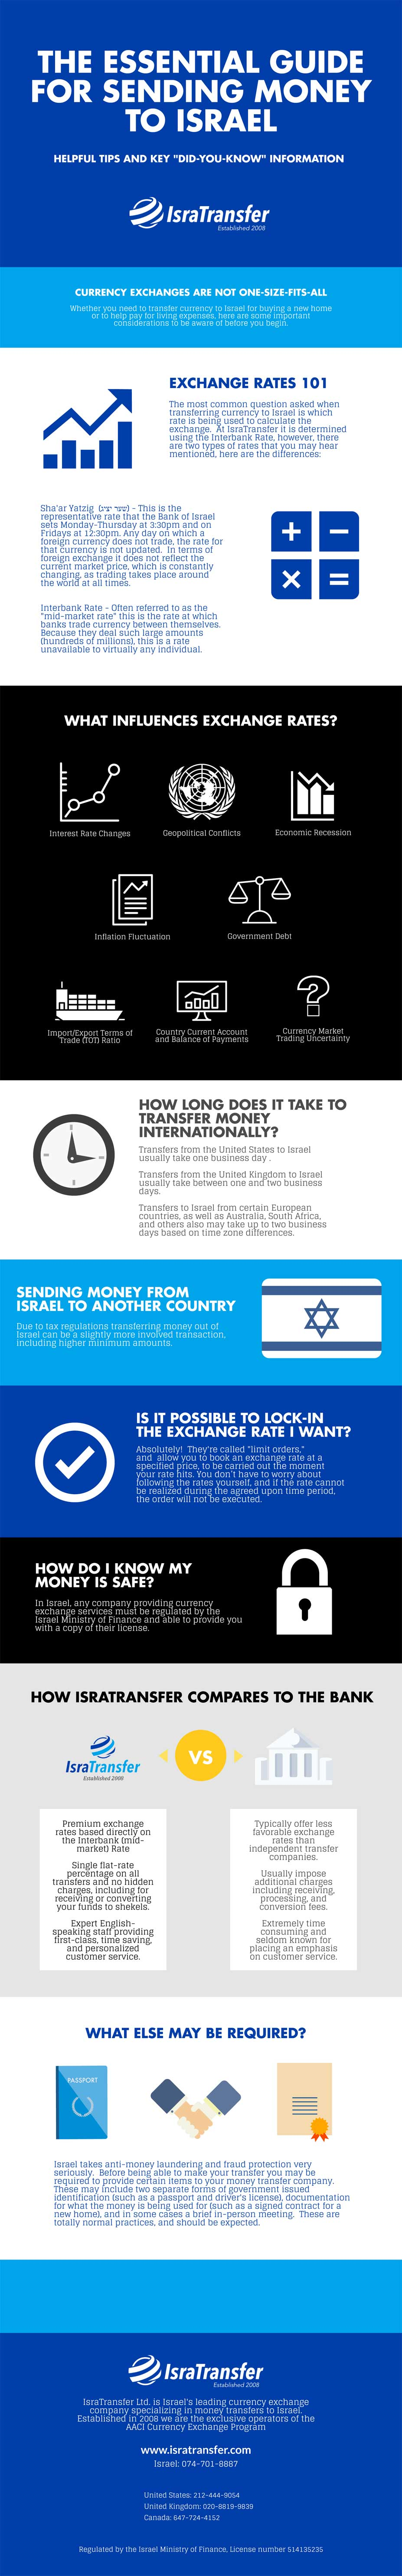 IsraTranfer Currency Infographic